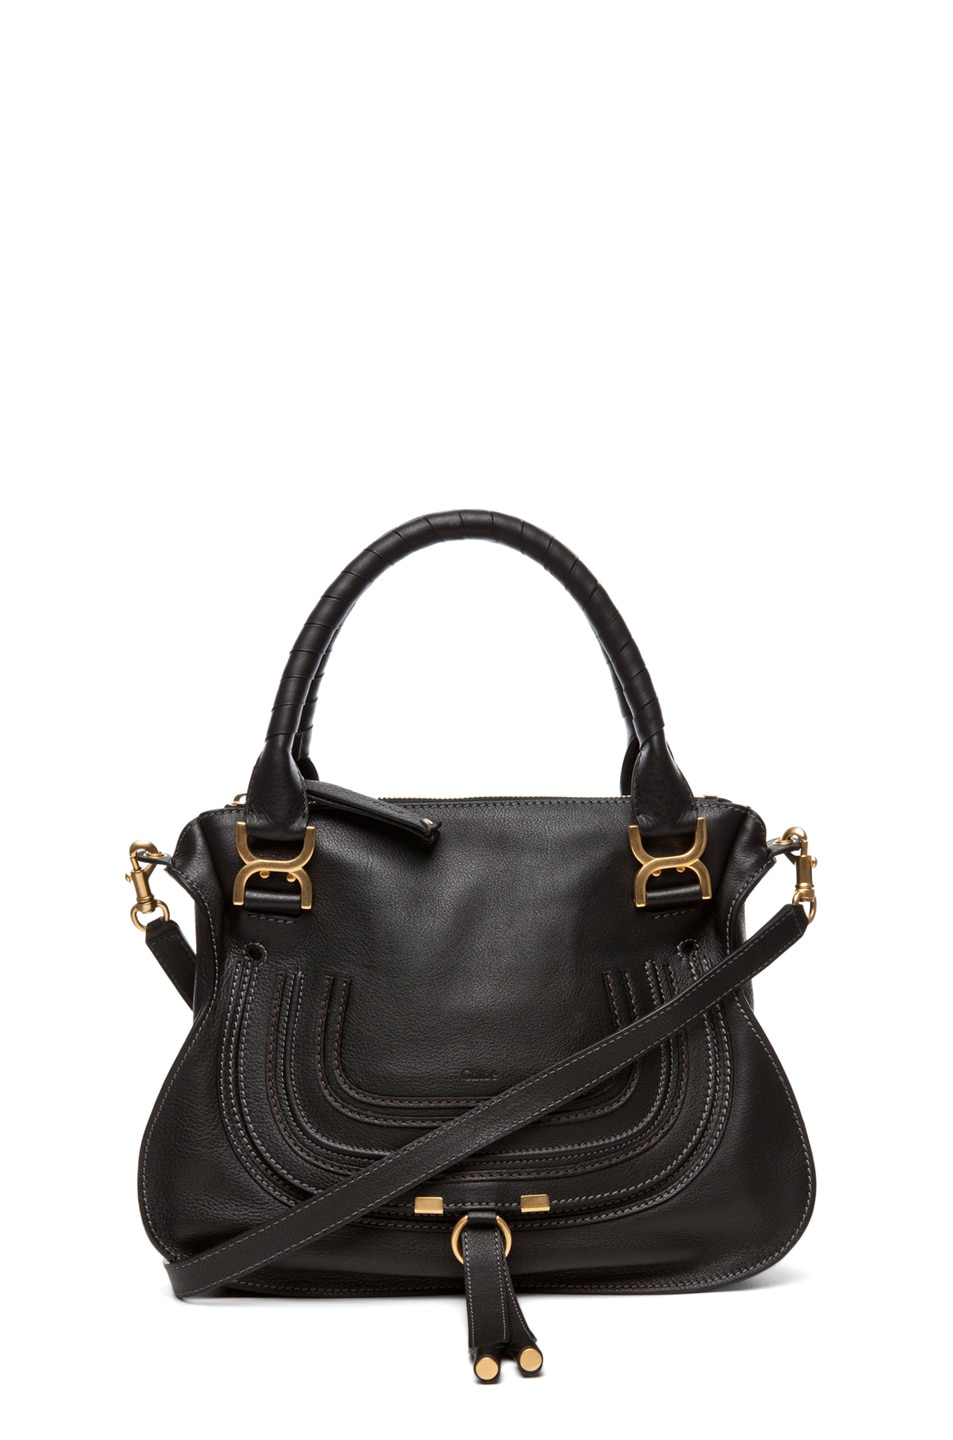 Image 1 of Chloe Marcie Satchel Small in Black